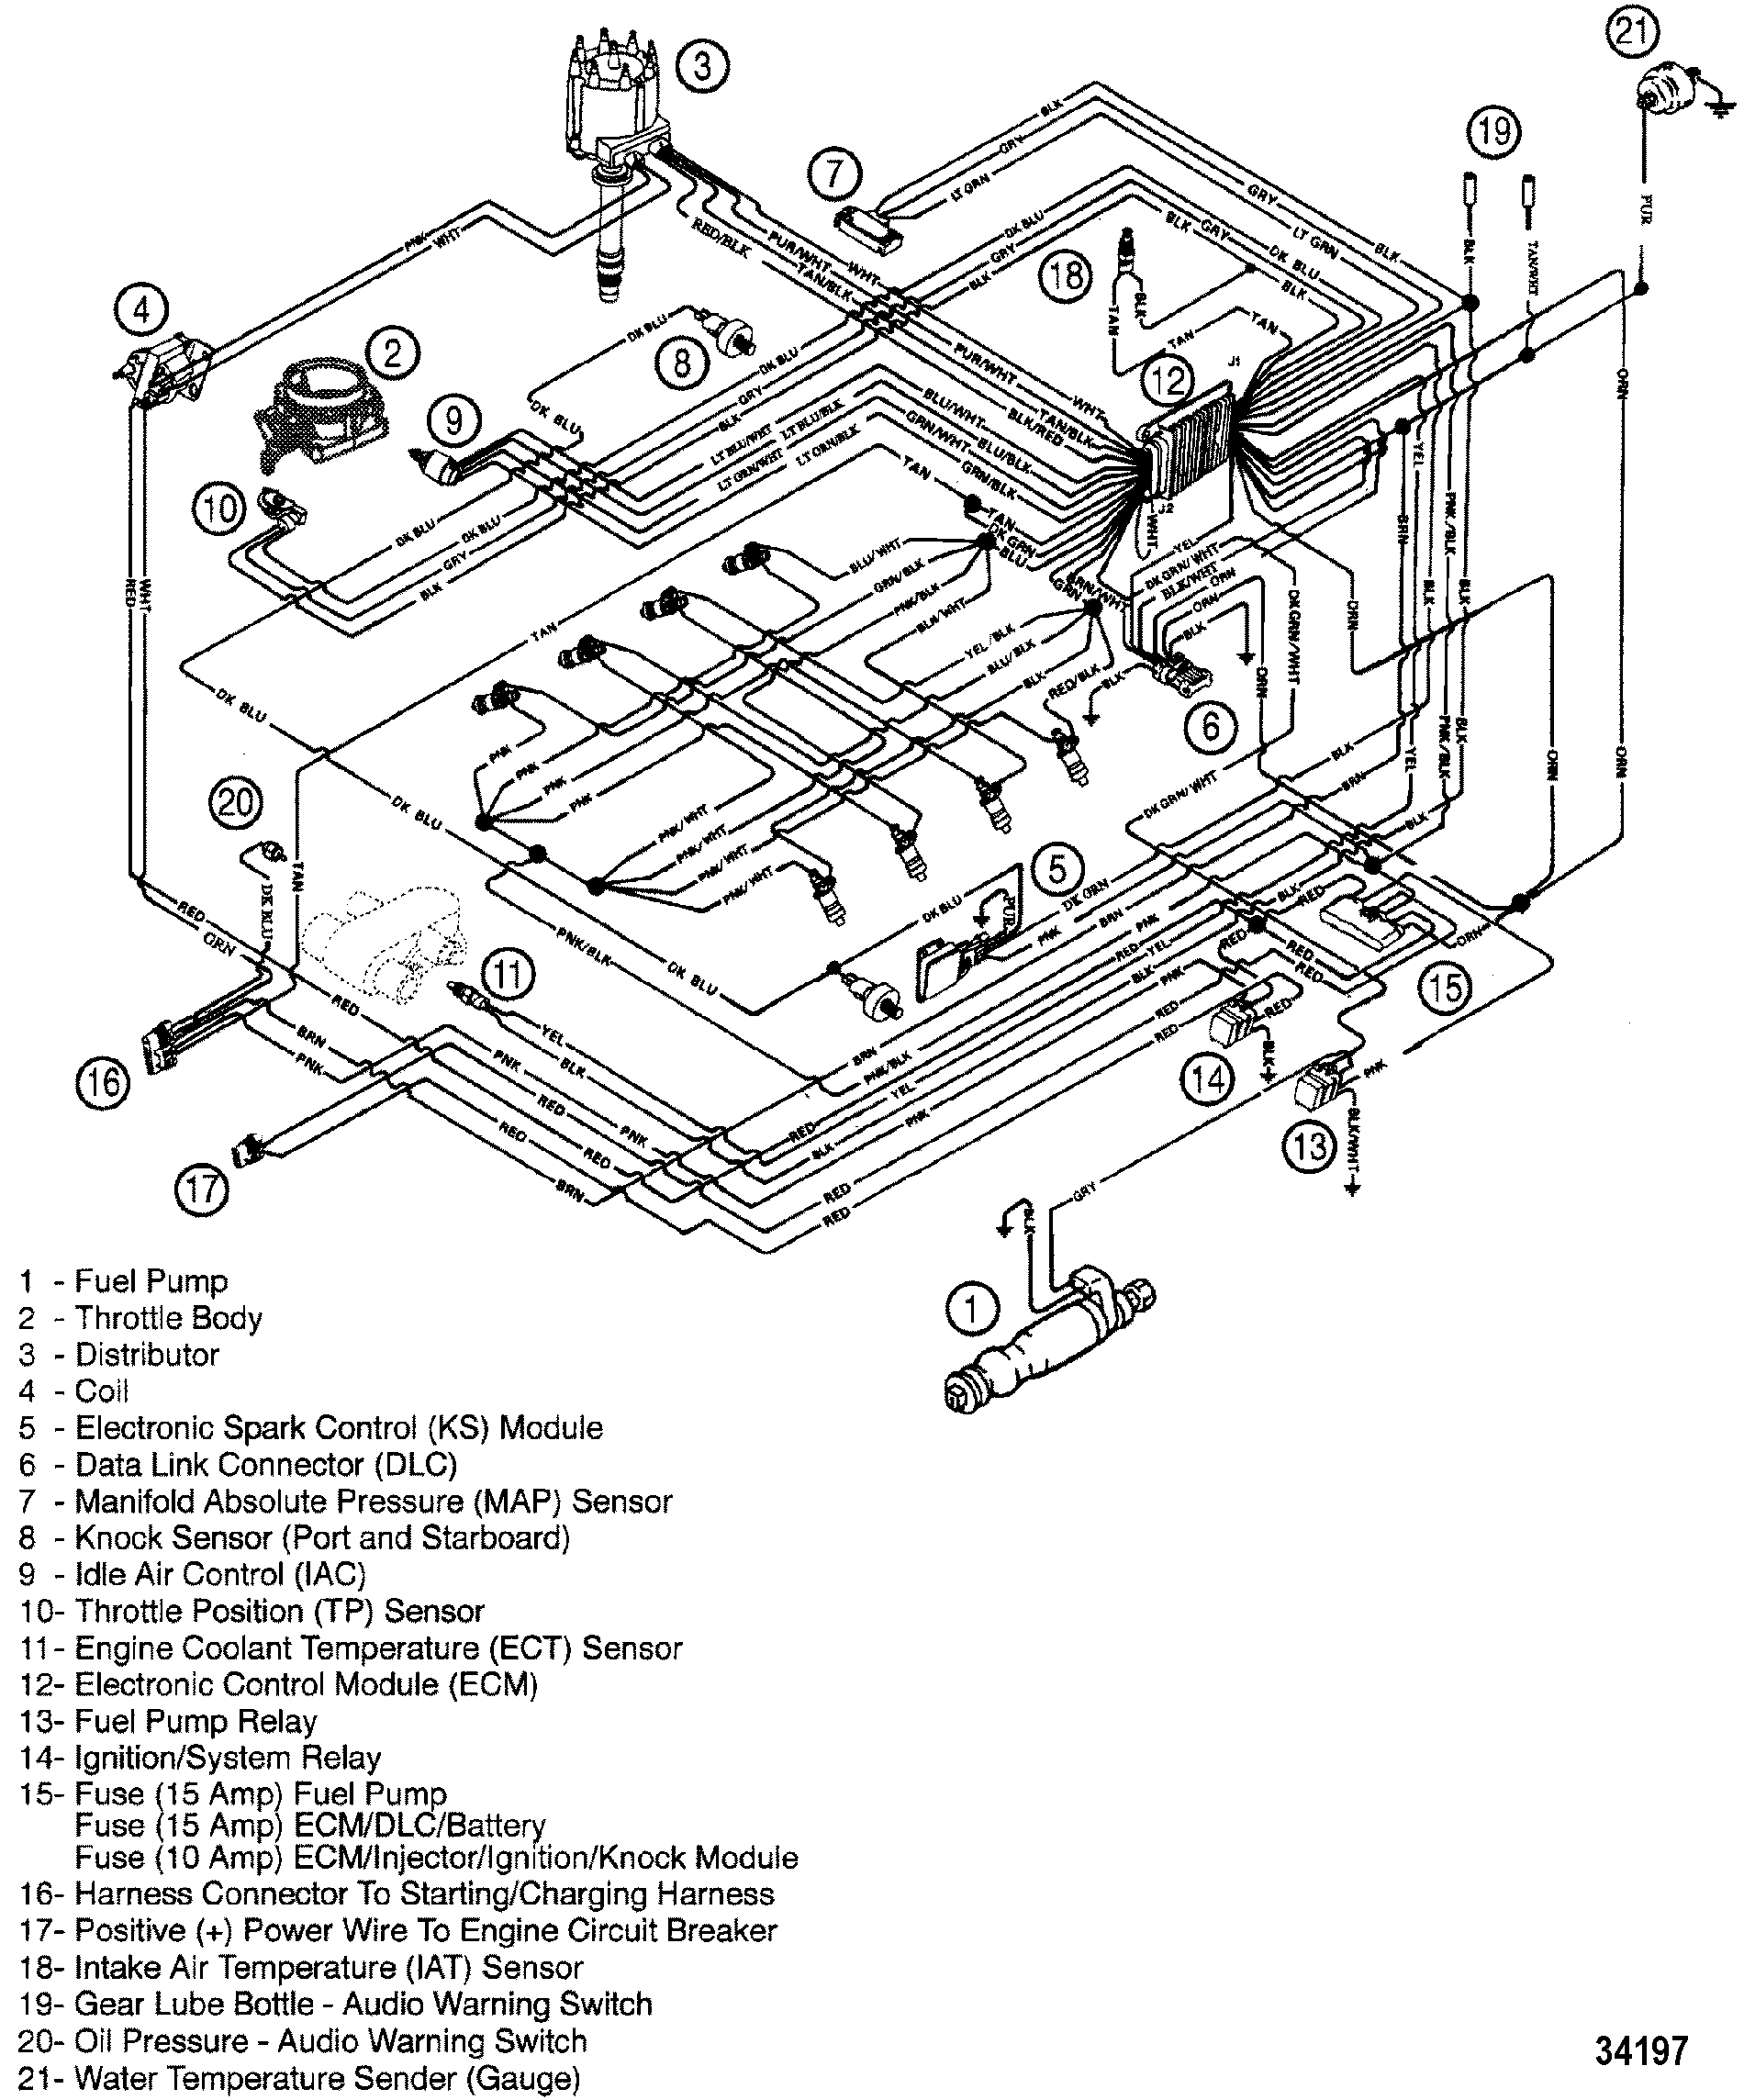 53000 How Steering Gears Work On Ships furthermore Wiring Diagram For The Alternator in addition Show product besides Electric Water Heater Wiring Diagram additionally P0710. on boat electrical systems